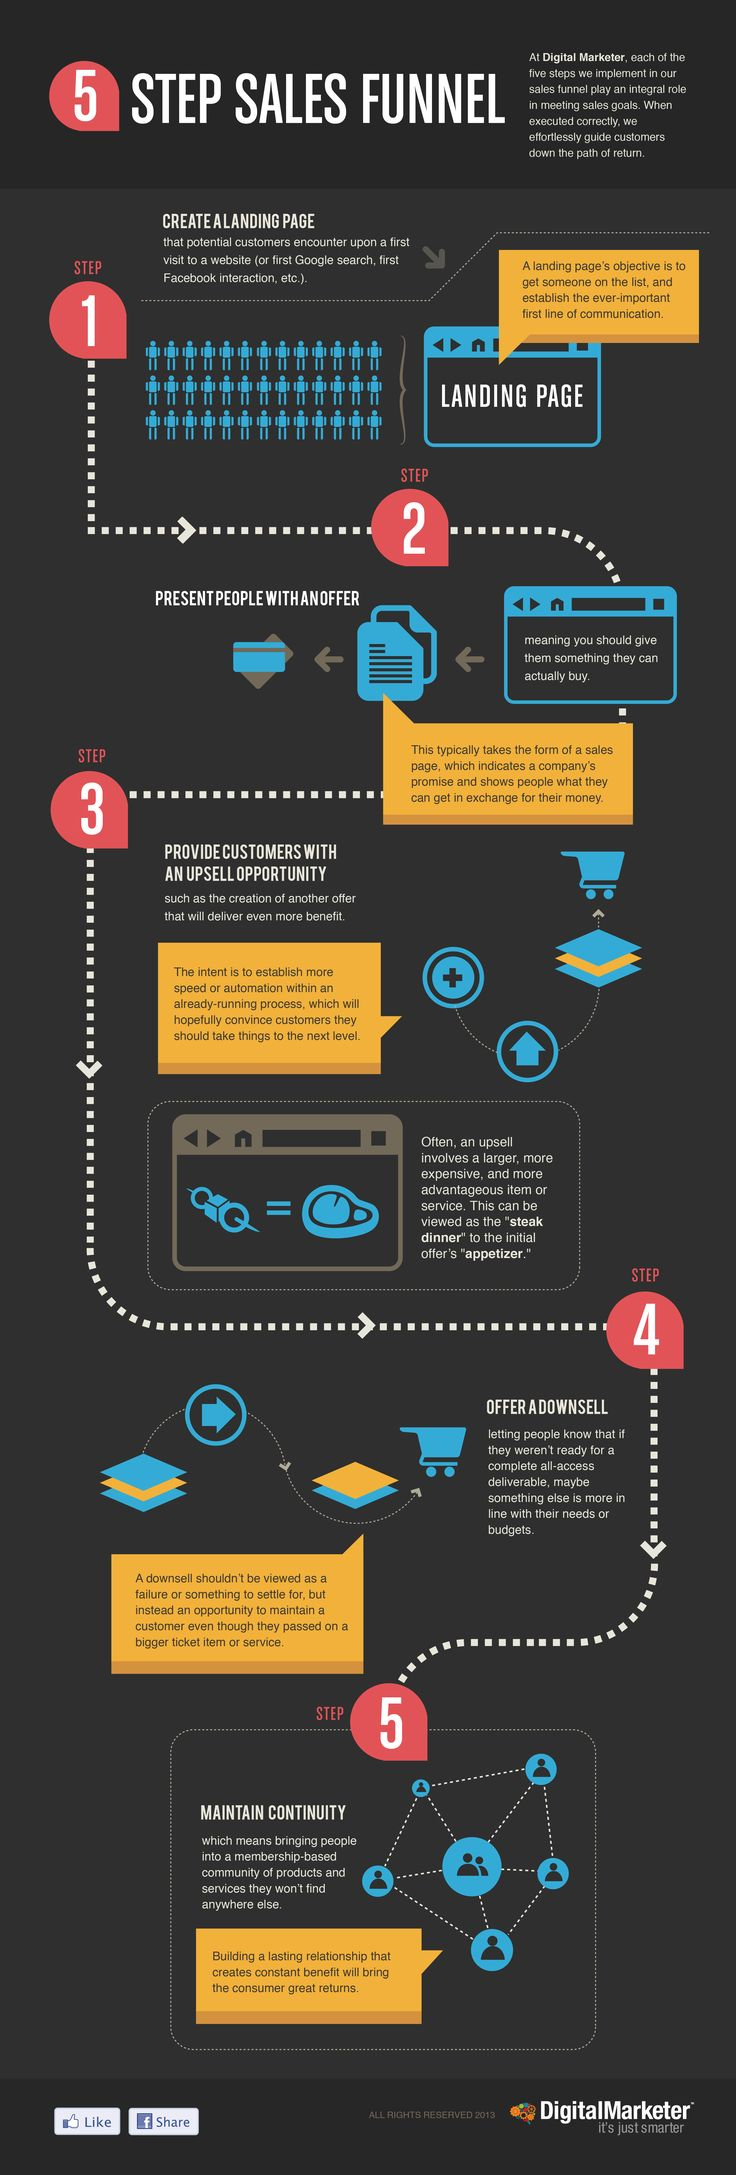 Our 5-Step Sales Funnel... how we get customers from Point A to Point B (the cash register!)